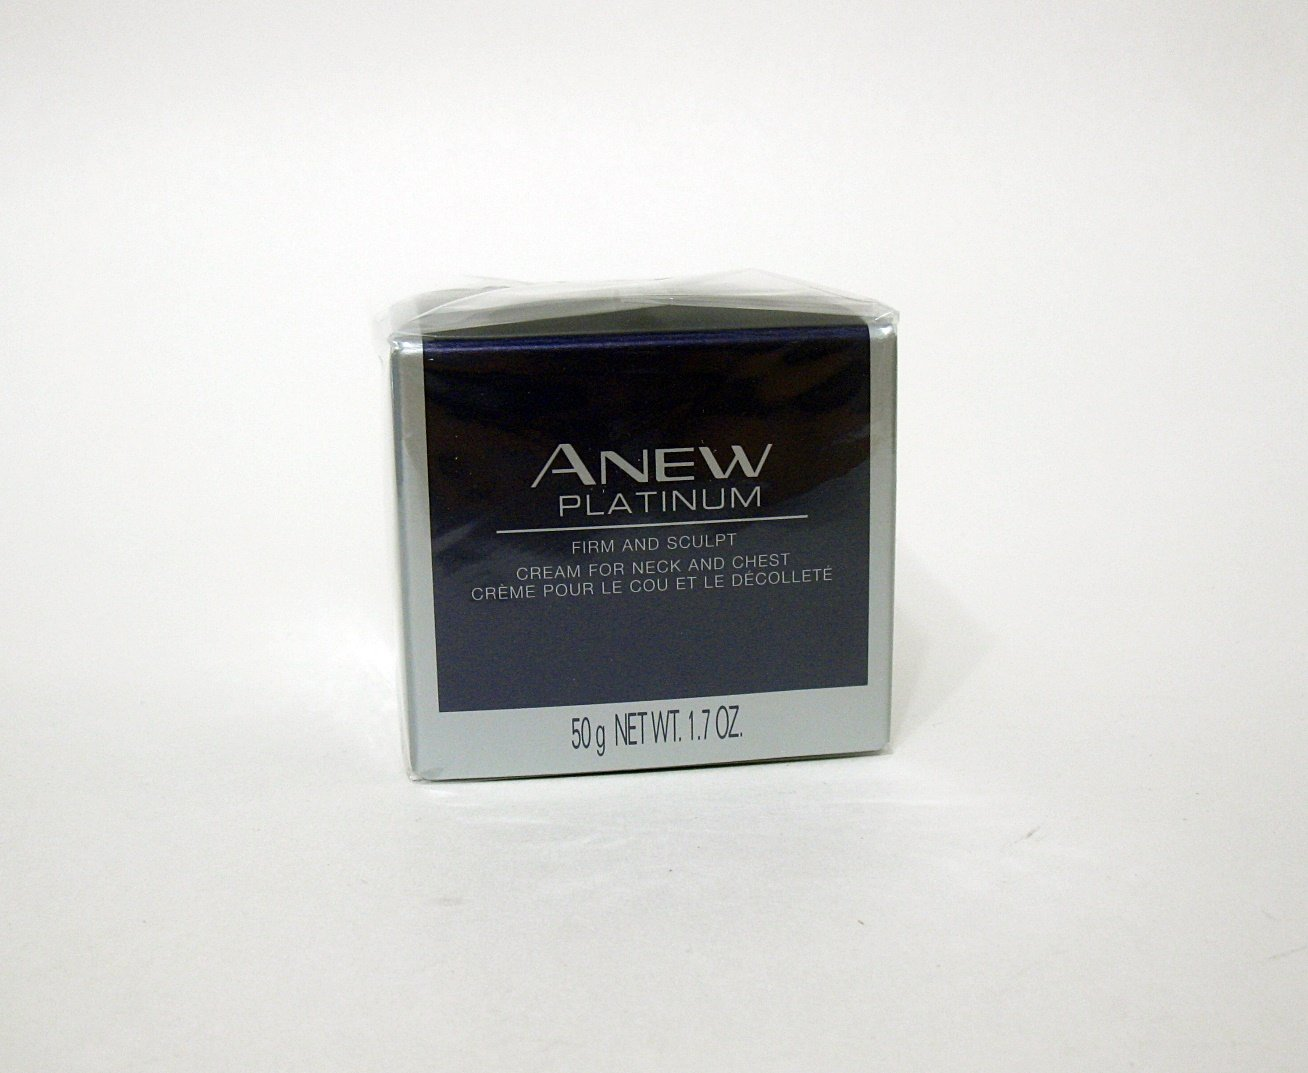 Avon ANEW Platinum Firm and Sculpt Cream For Neck and Chest 50g Avon Products